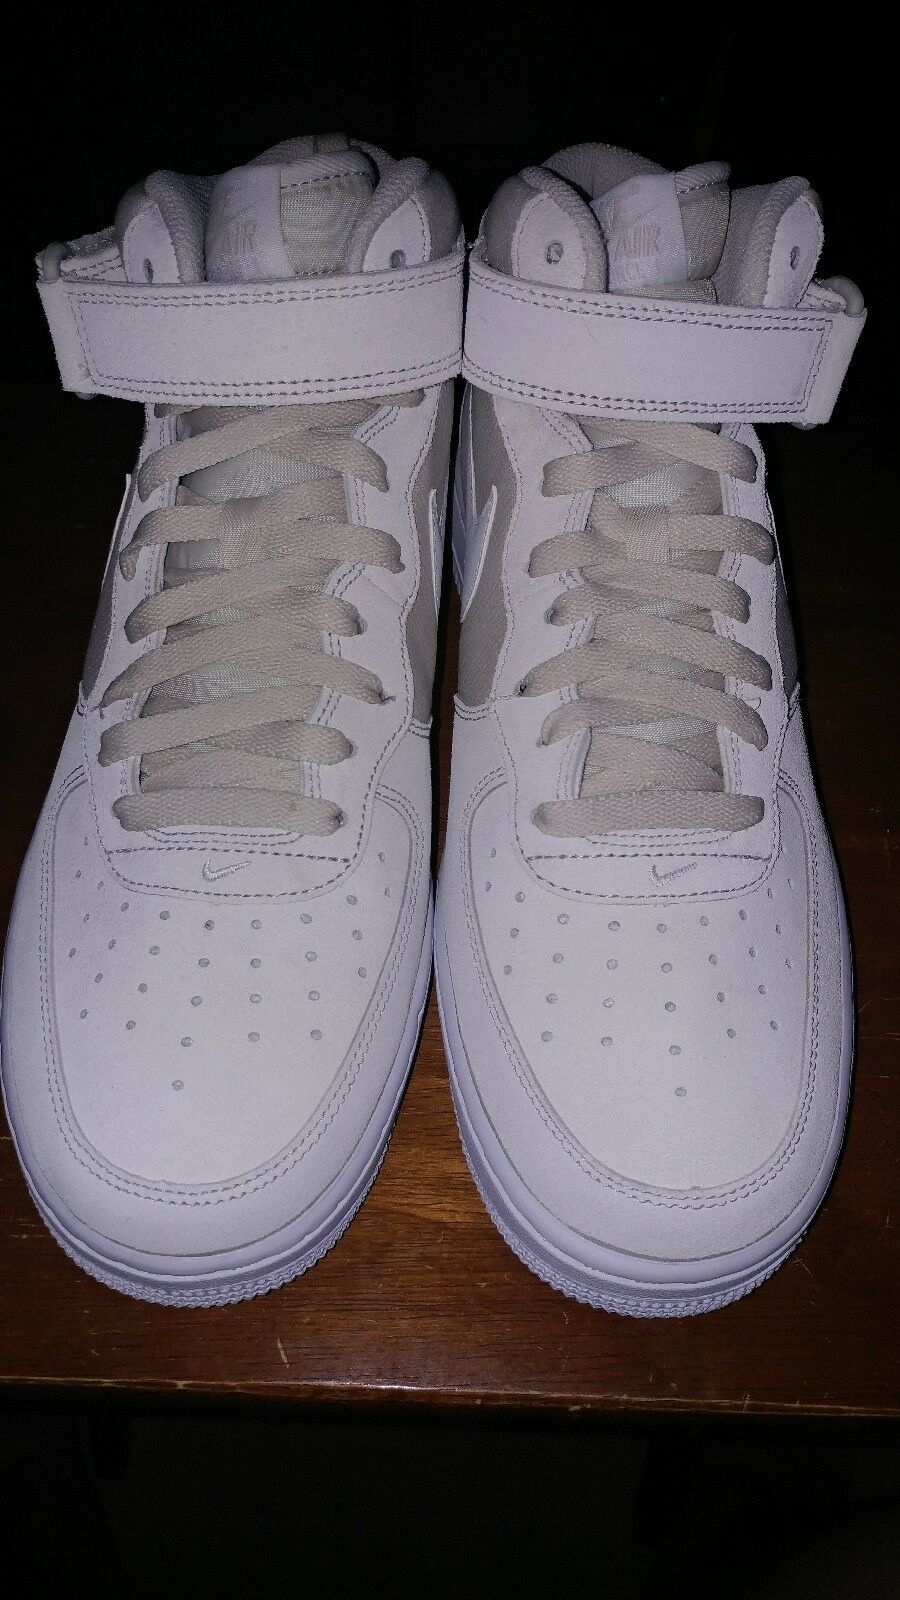 Nike Air Force 1 Mid 07 Mens 315123-034 Light Bone White Shoes Sneakers Size 10